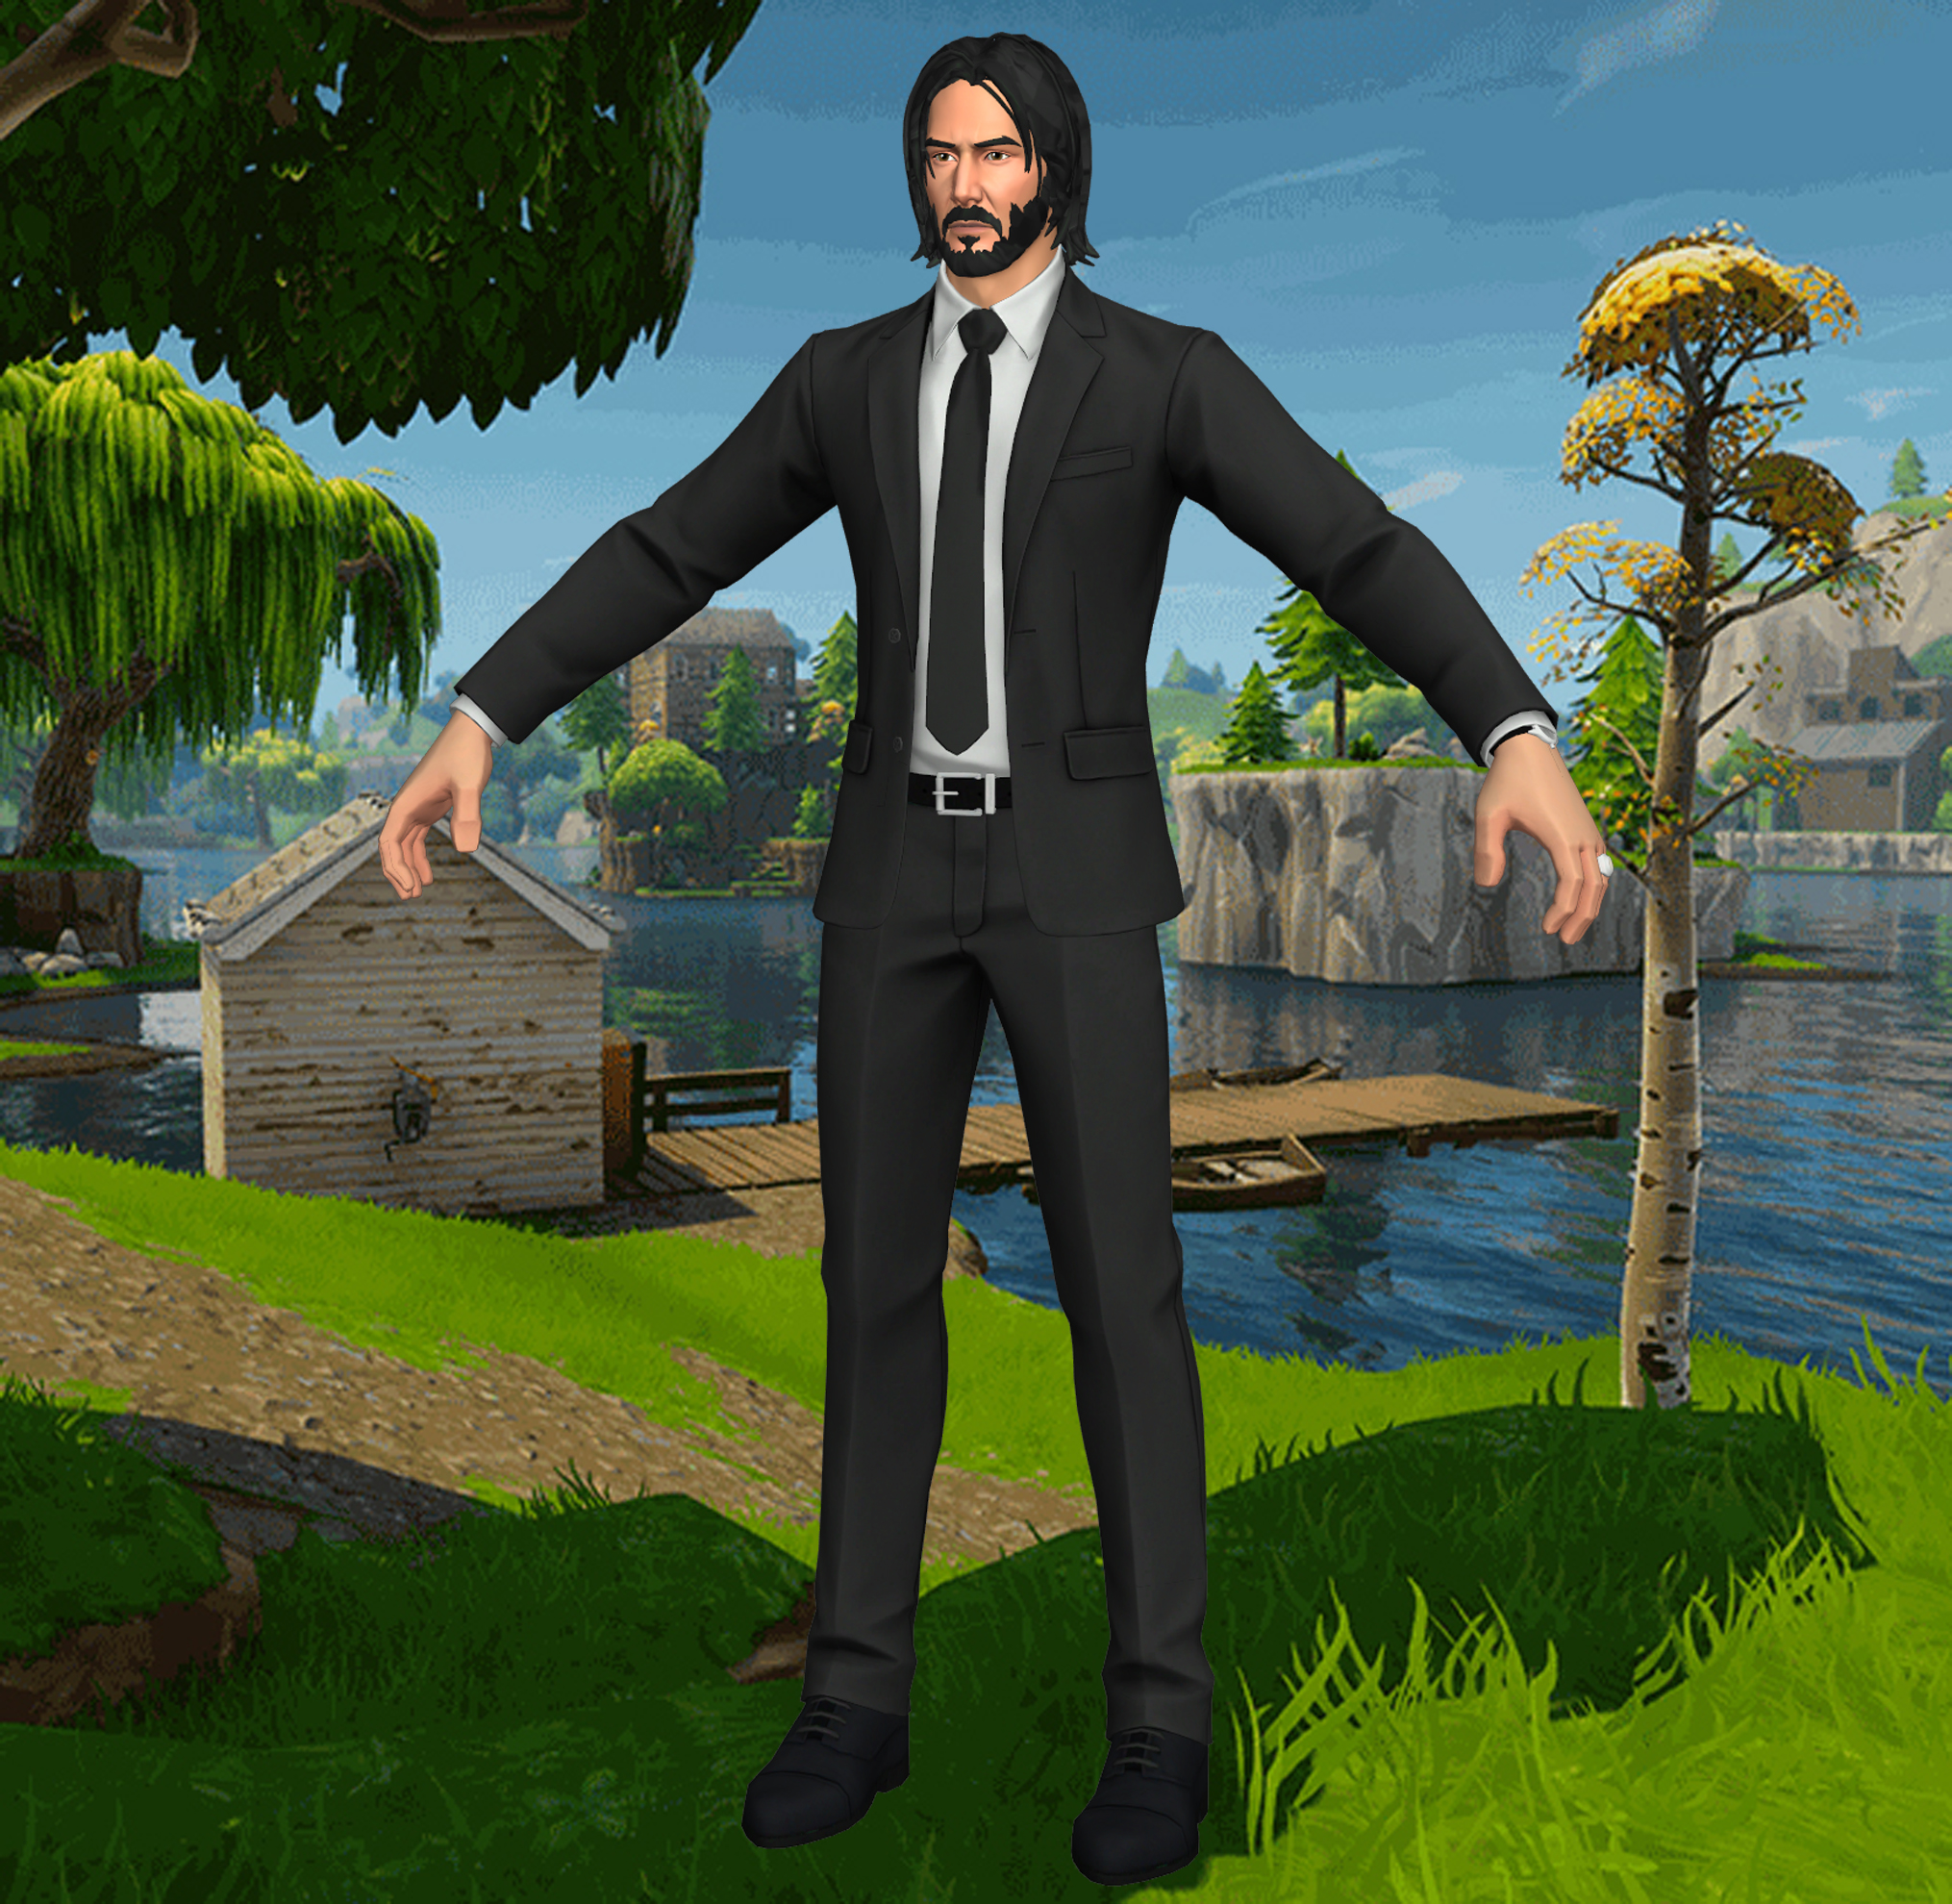 John Wick Xnalara Model By Javiertheone On Deviantart